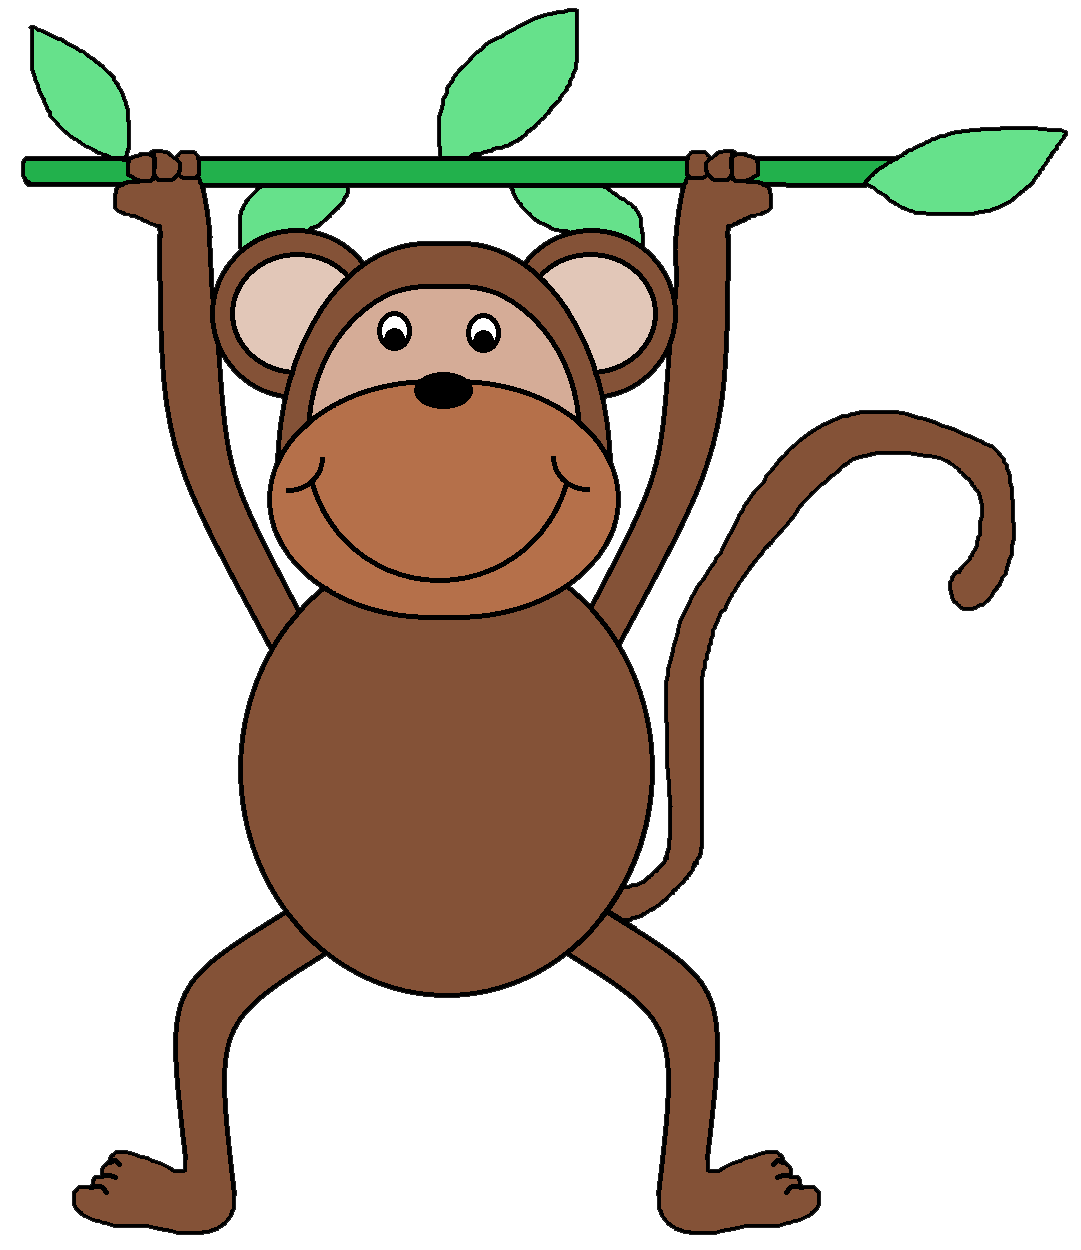 Monkey graphics clip art clipart best for Graphics clipart